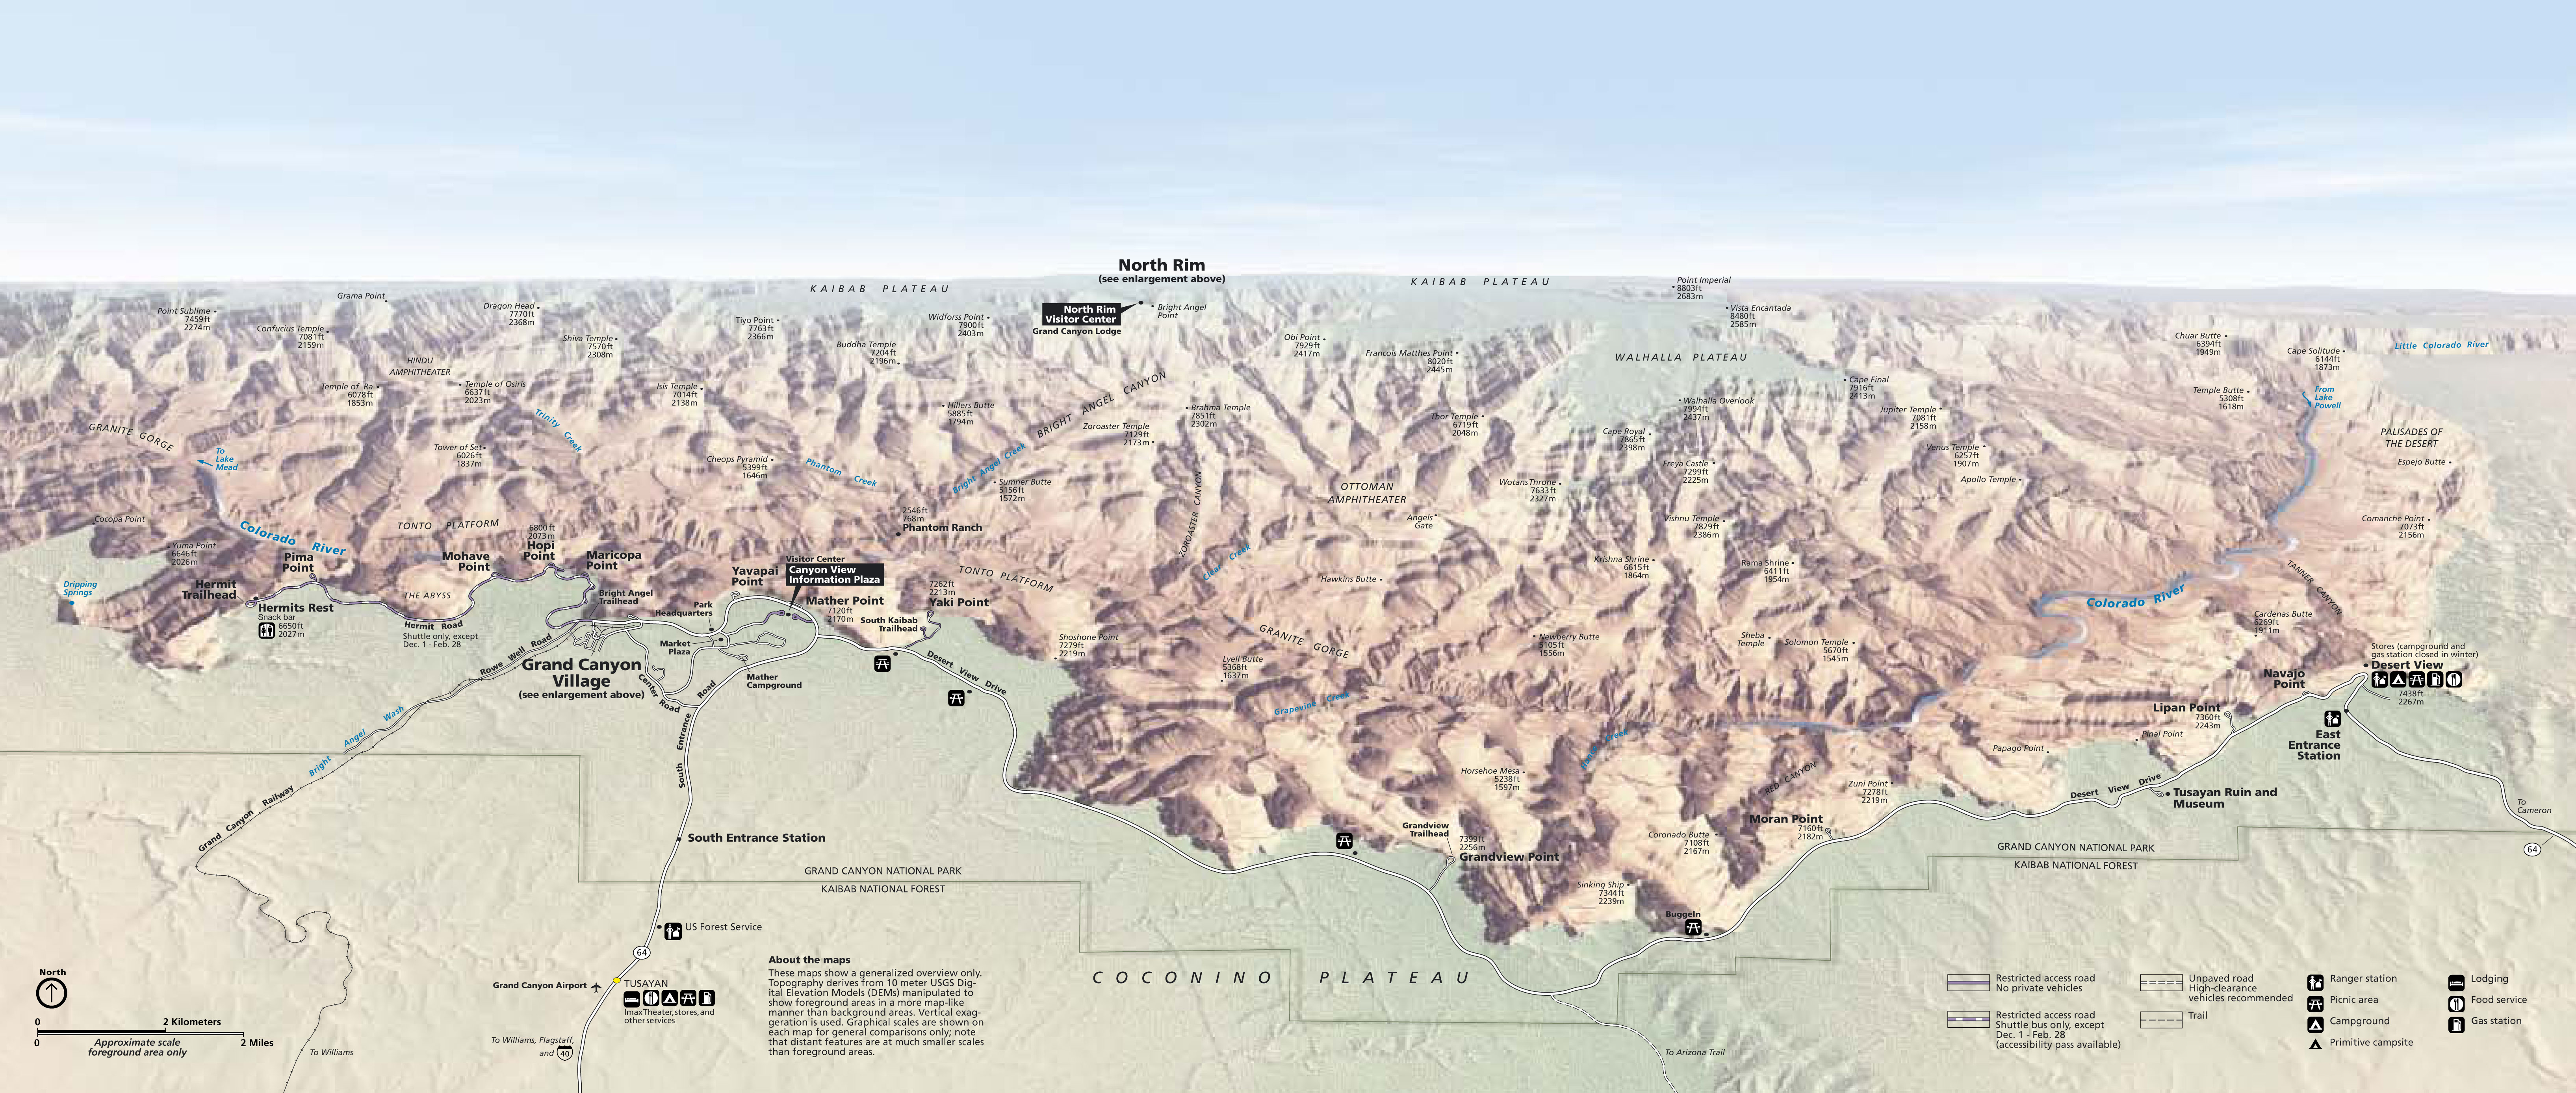 Grand Canyon Map - AllTrips on painted desert map, marble canyon map, kachina village map, biltmore village map, lake george village map, yellowstone canyon village map, beaver creek village map, glen canyon recreation area map, toroweap point map, poinciana village map, canyons located on a map, mazama village map, north coast village map, bright angel point map, cameron village map, curry village map, hempstead village map, grant grove village map, williams az forest road map, havasu canyon map,